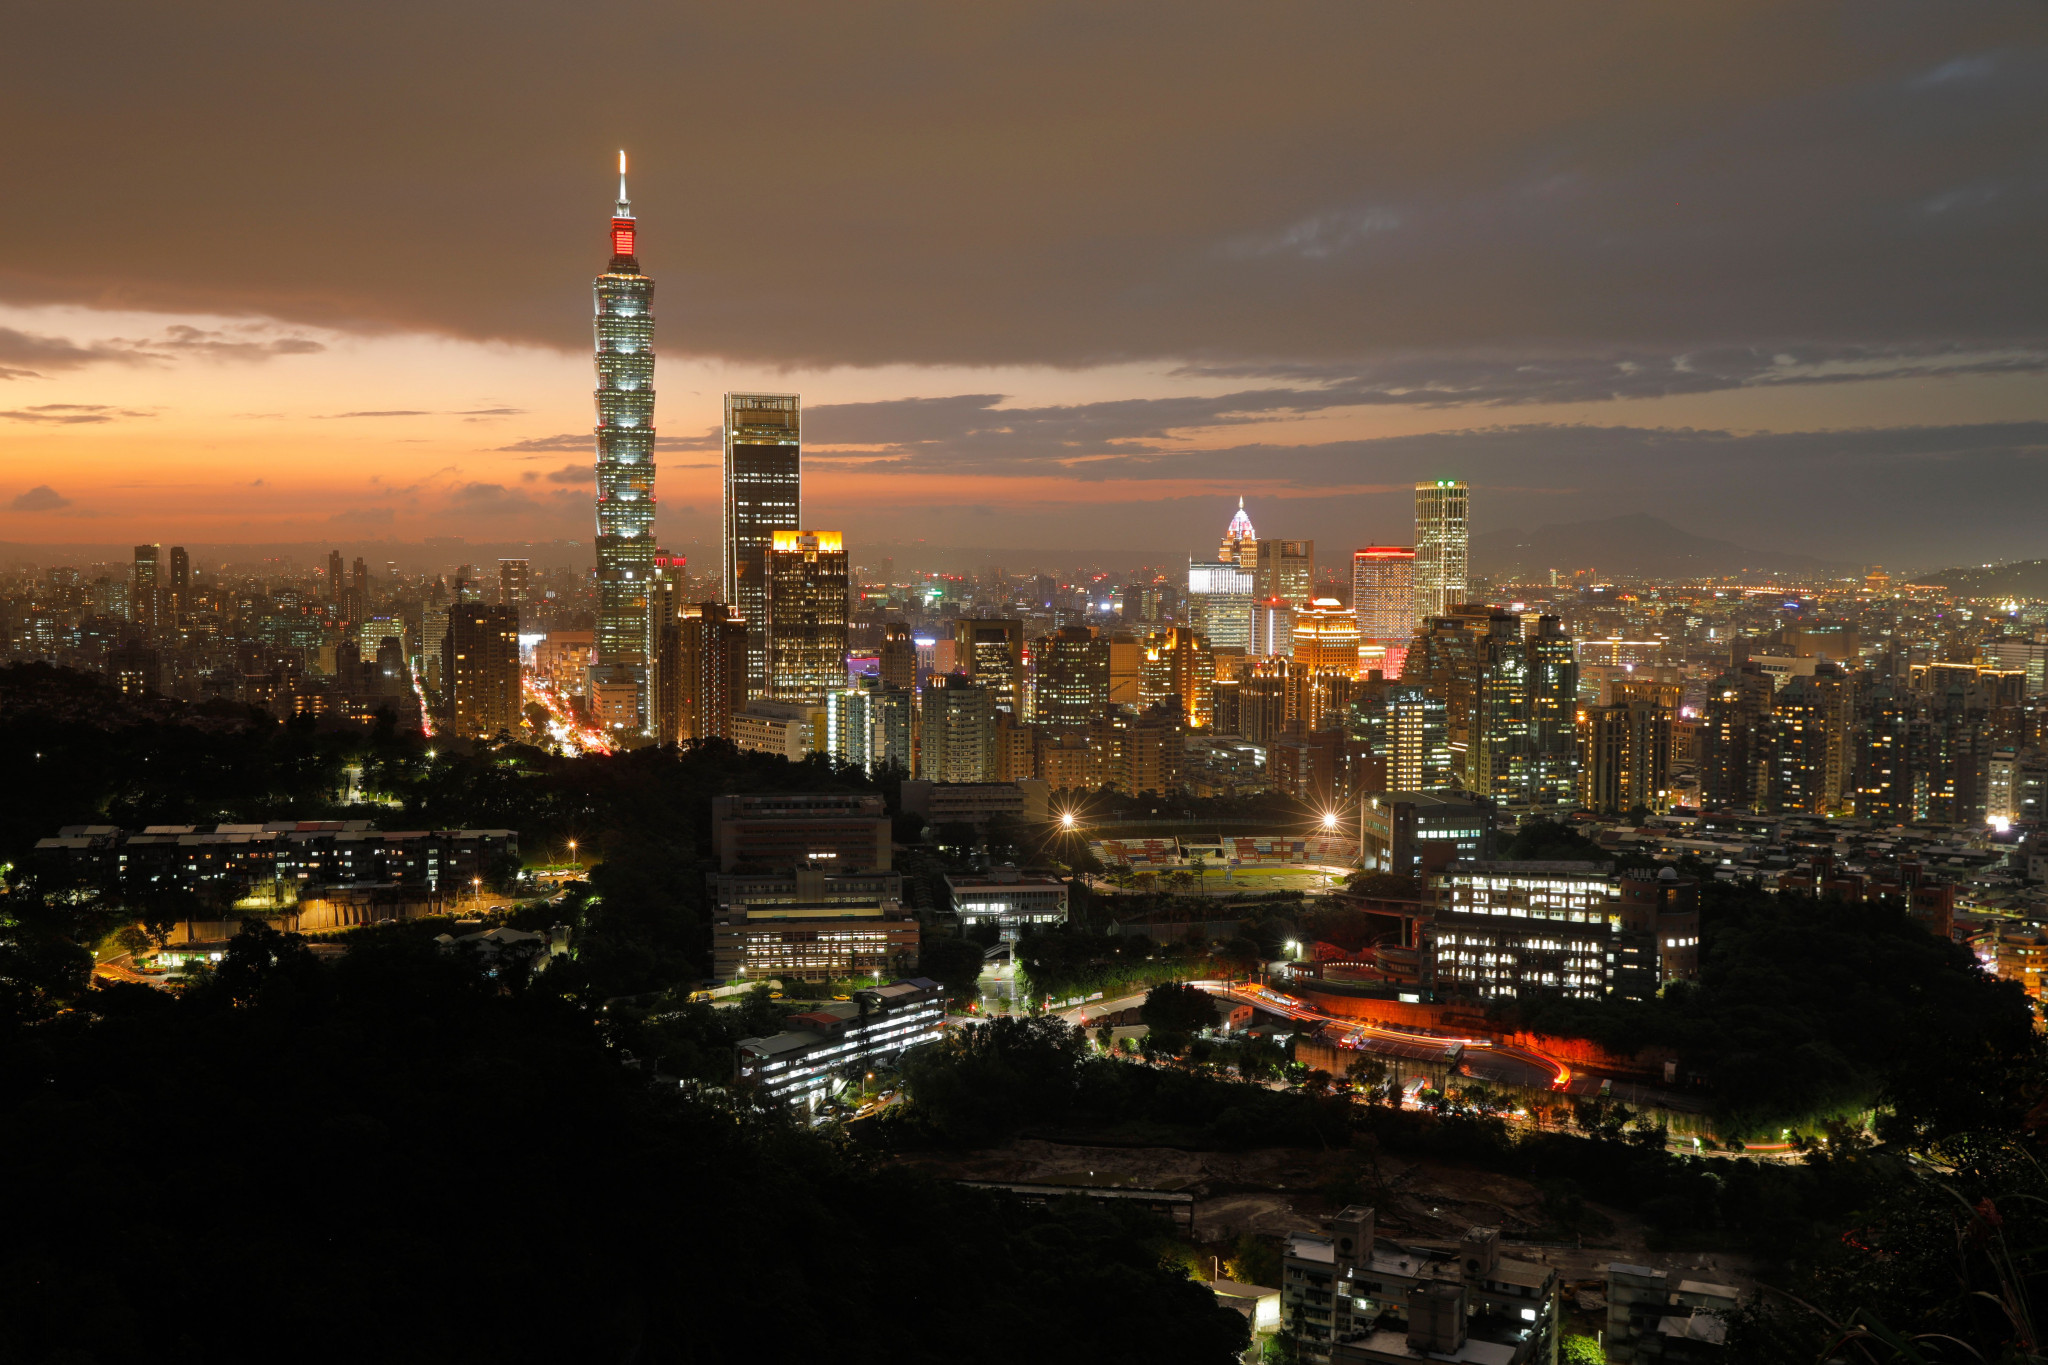 Taipei is the capital of Taiwan, and surrounded by New Taipei City ©Getty Images